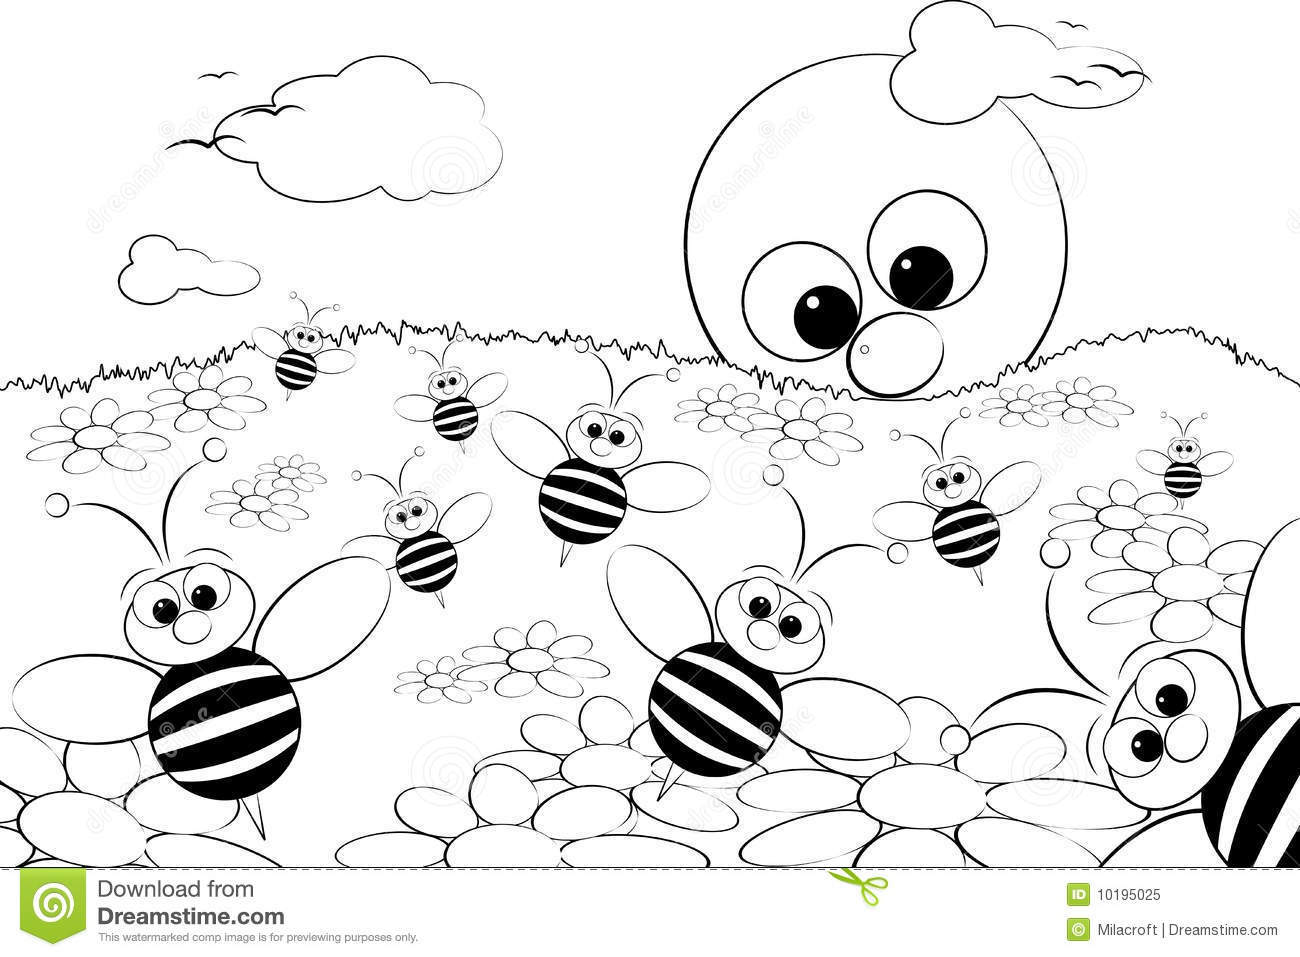 Coloring Page Landscape - Coloring page landscape with sun and bees